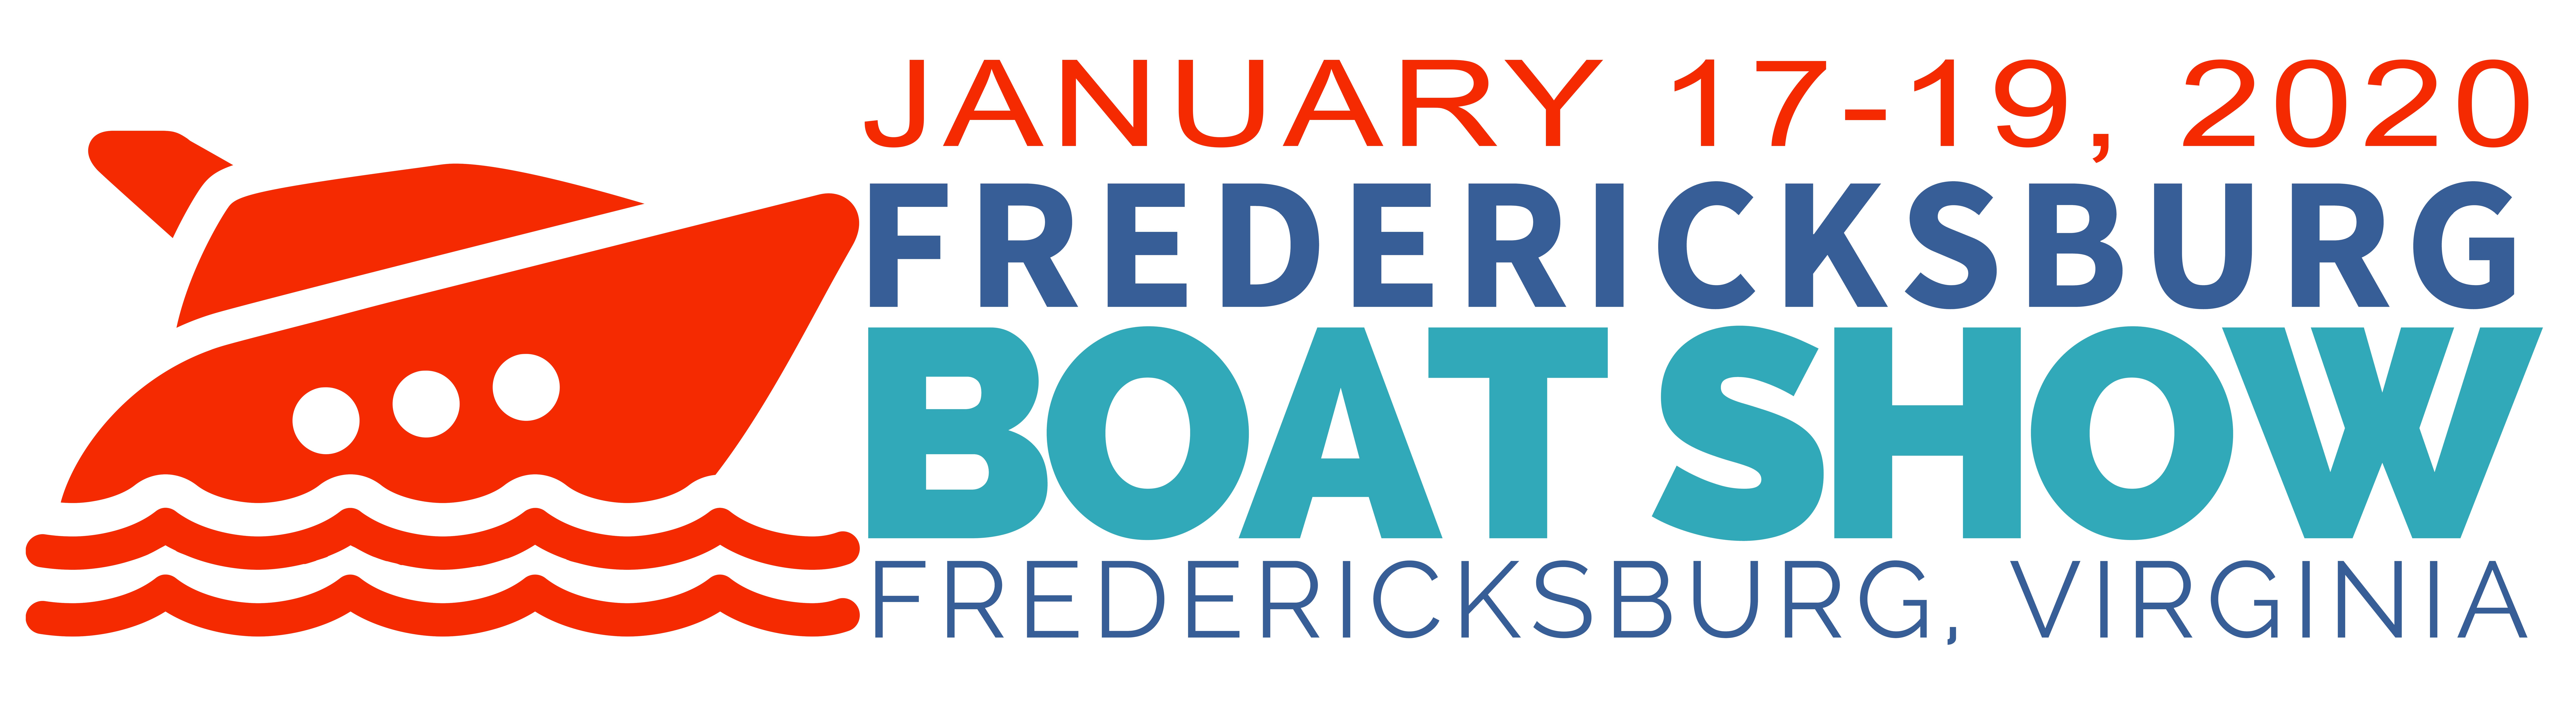 Tickets for Fredericksburg Boat Show in Fredericksburg from ShowClix